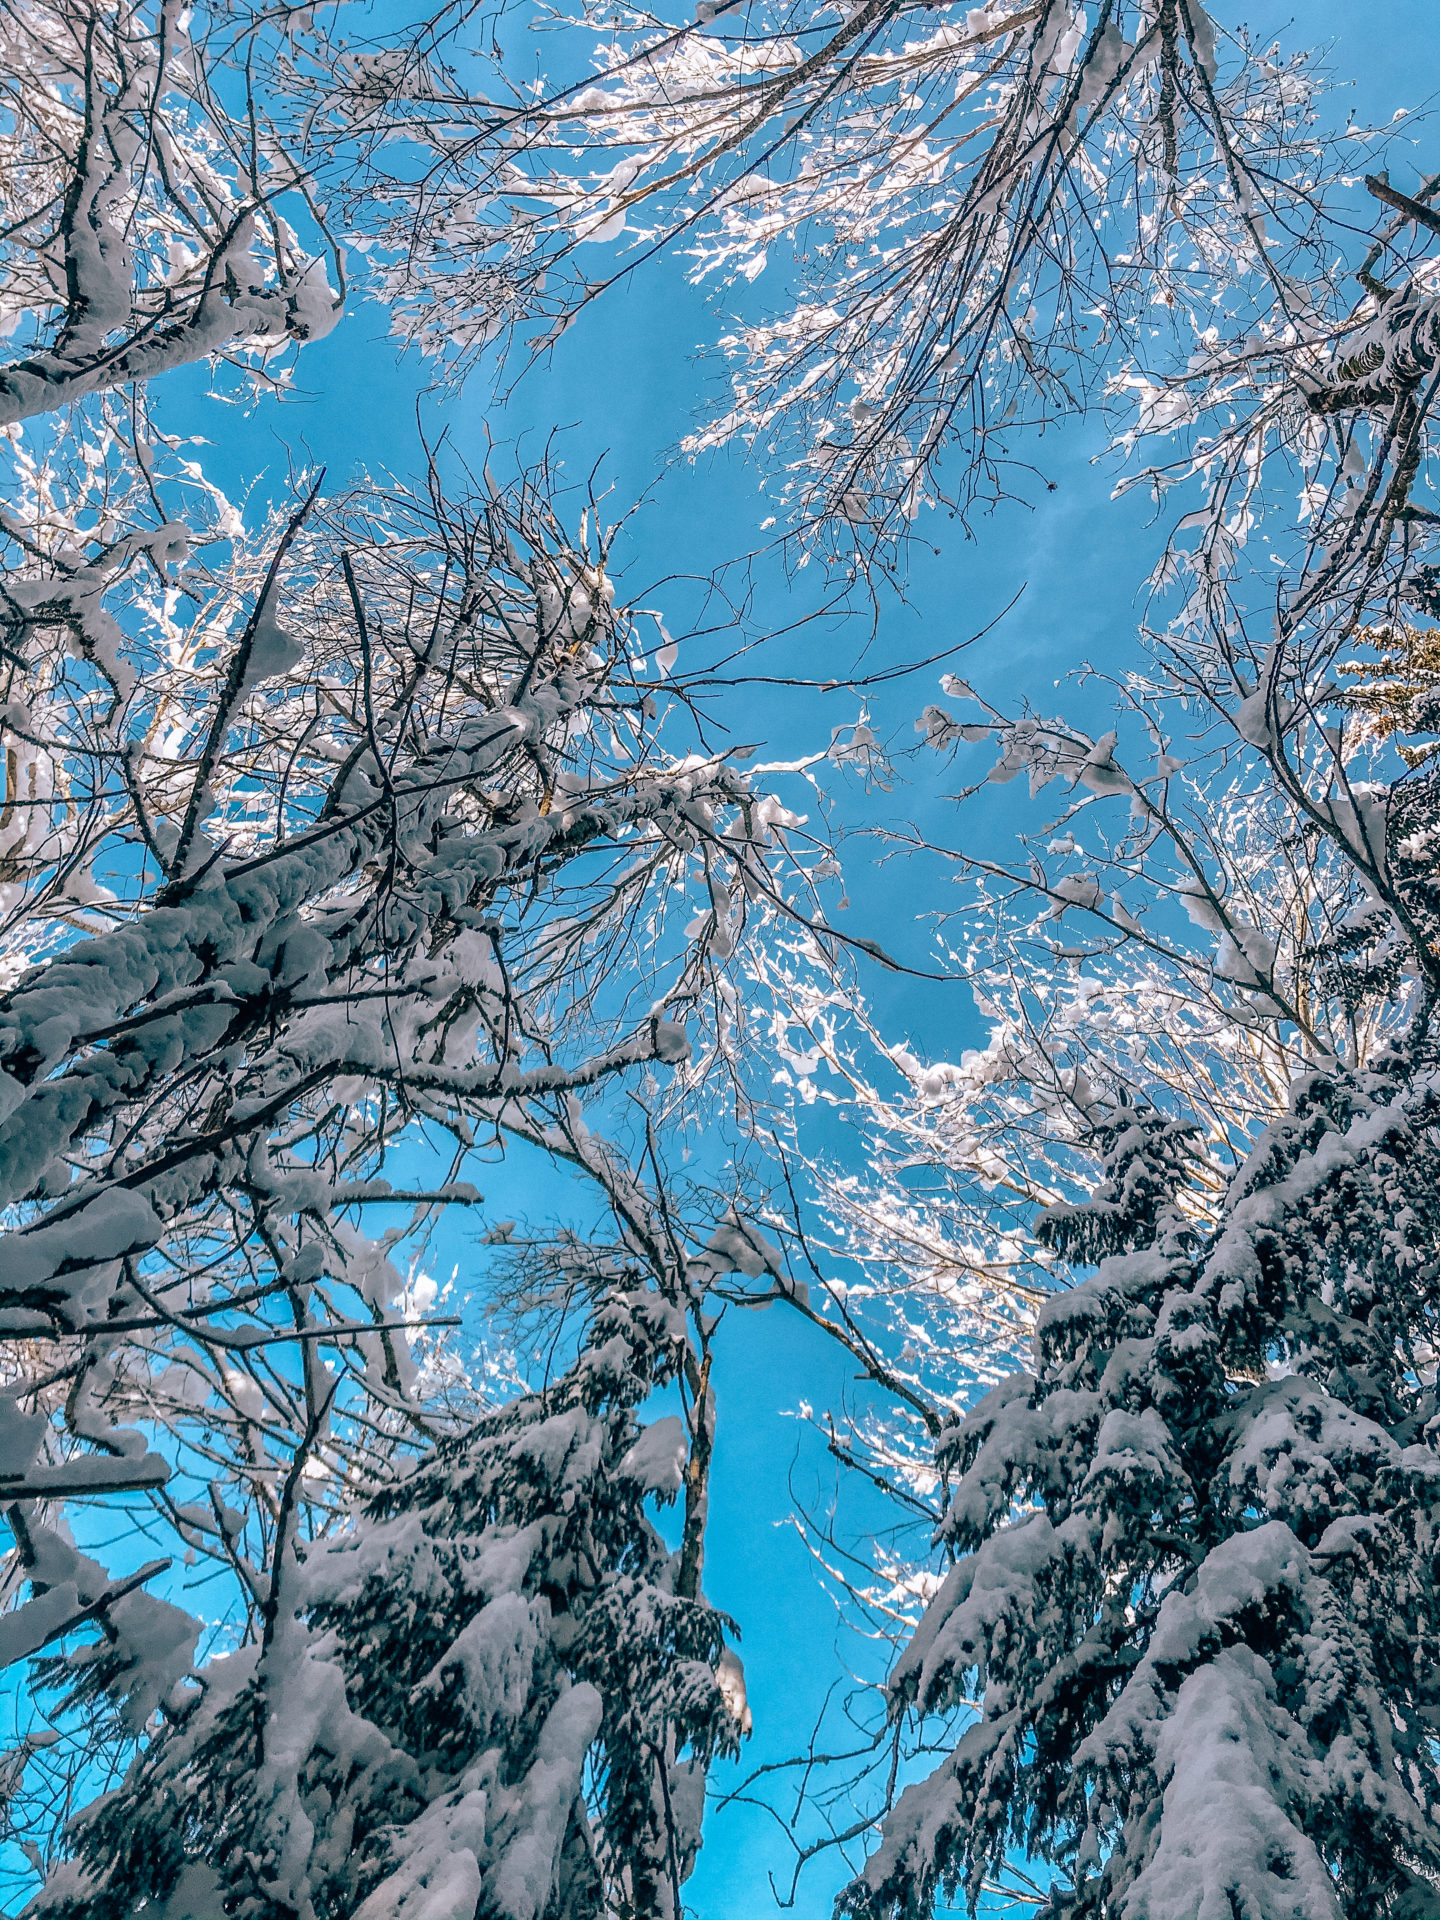 Blue skies and trees covered in snow